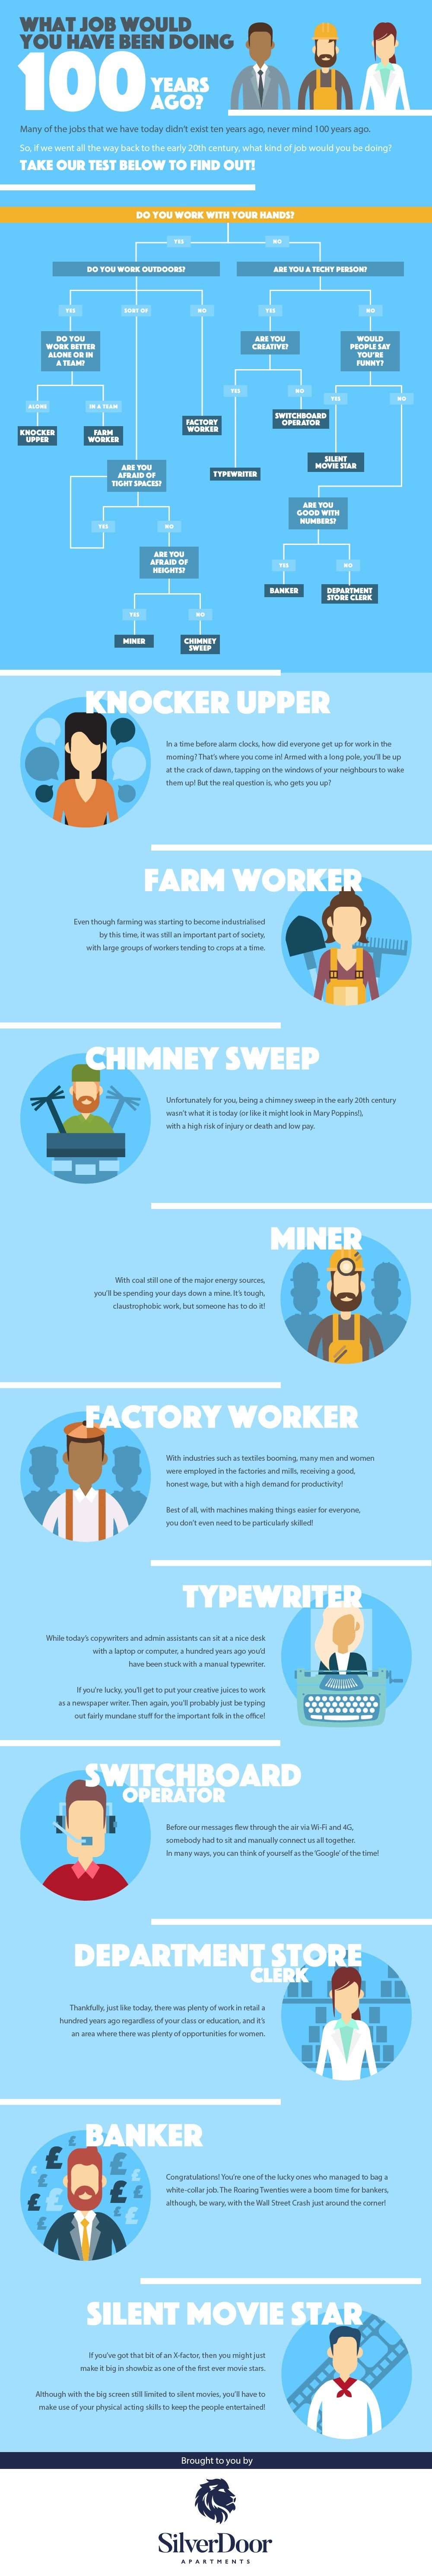 What Job Would You Have Been Doing 100 Years Ago? - #infographic